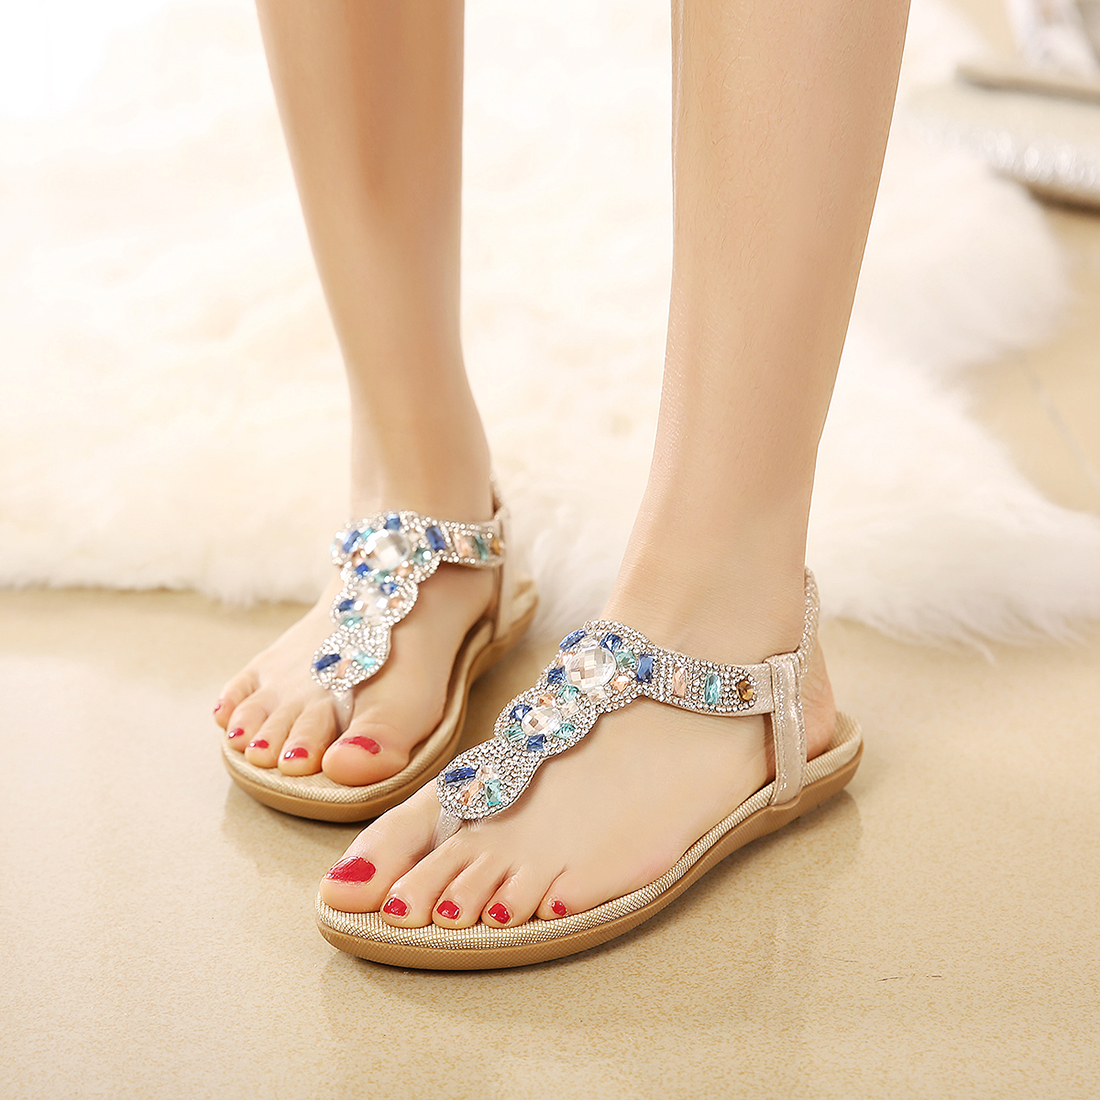 f3c9266d21a0 Women rhinestone sandals Ankle Strap Rhinestone Party Wear Gladiator Summer Sandals  Flat Shoes Women Bead T Strap Flip Flops -in Low Heels from Shoes on ...